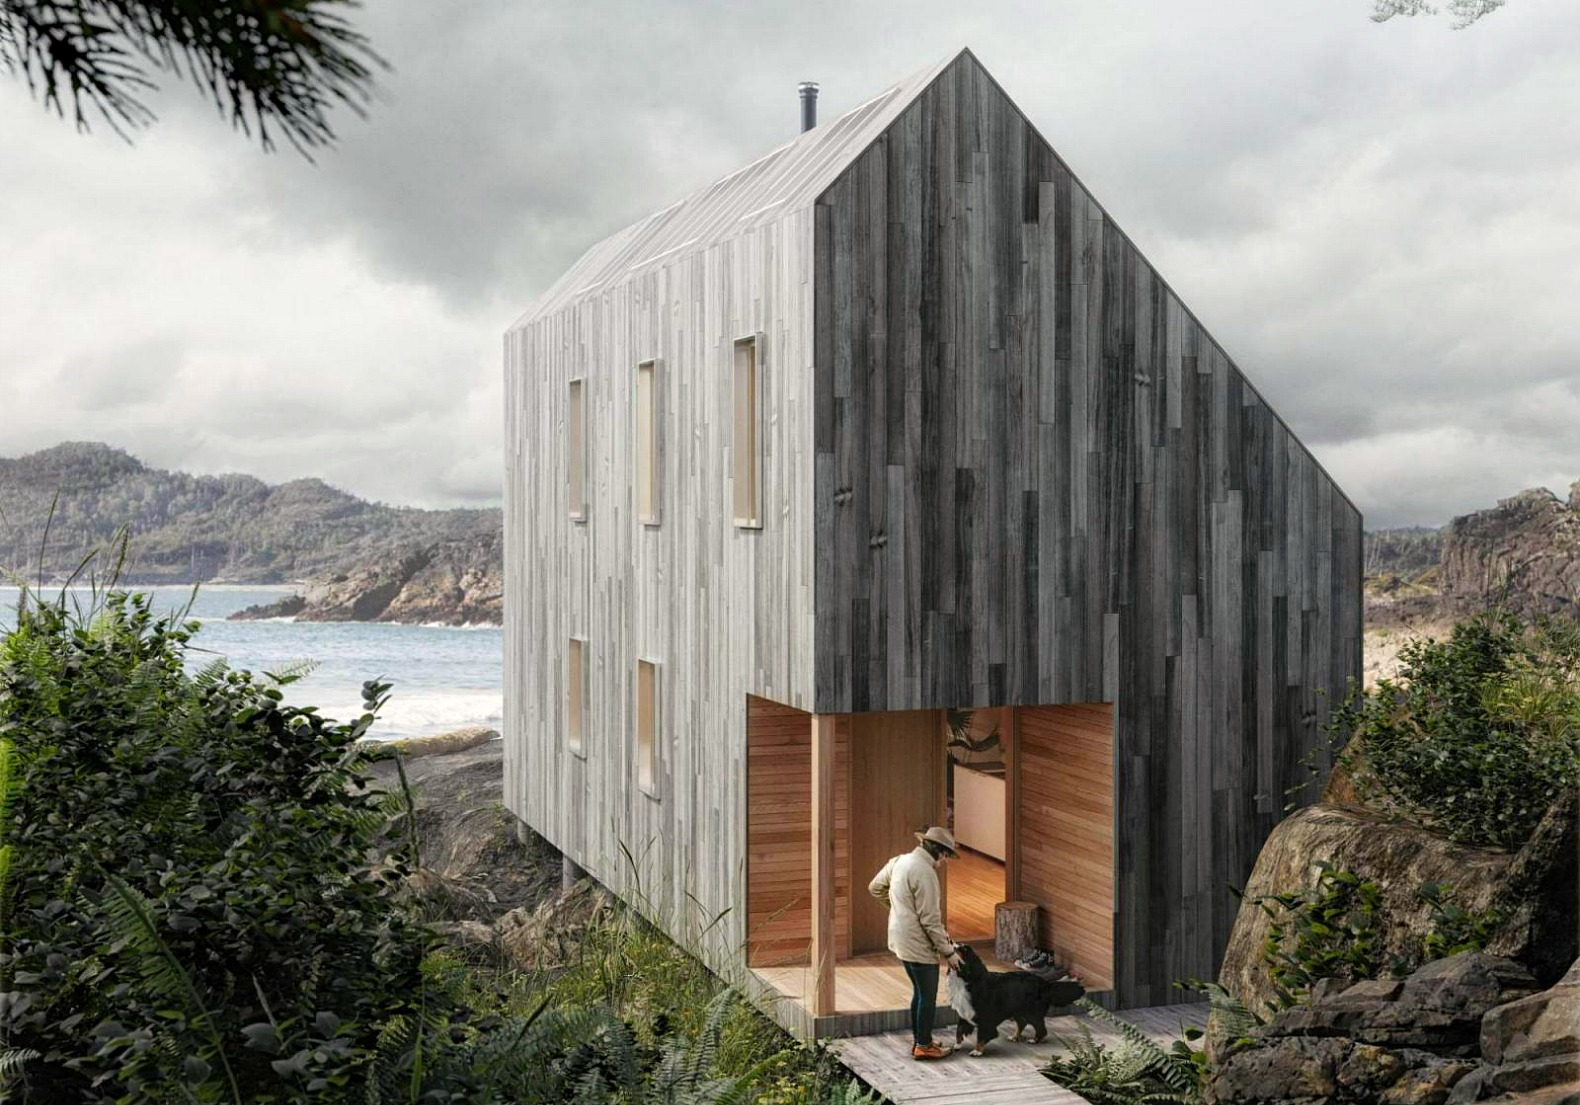 Affordable flat pack surf shack shelter operates completely off the grid inhabitat green - The cork hut a flexible housing alternative ...